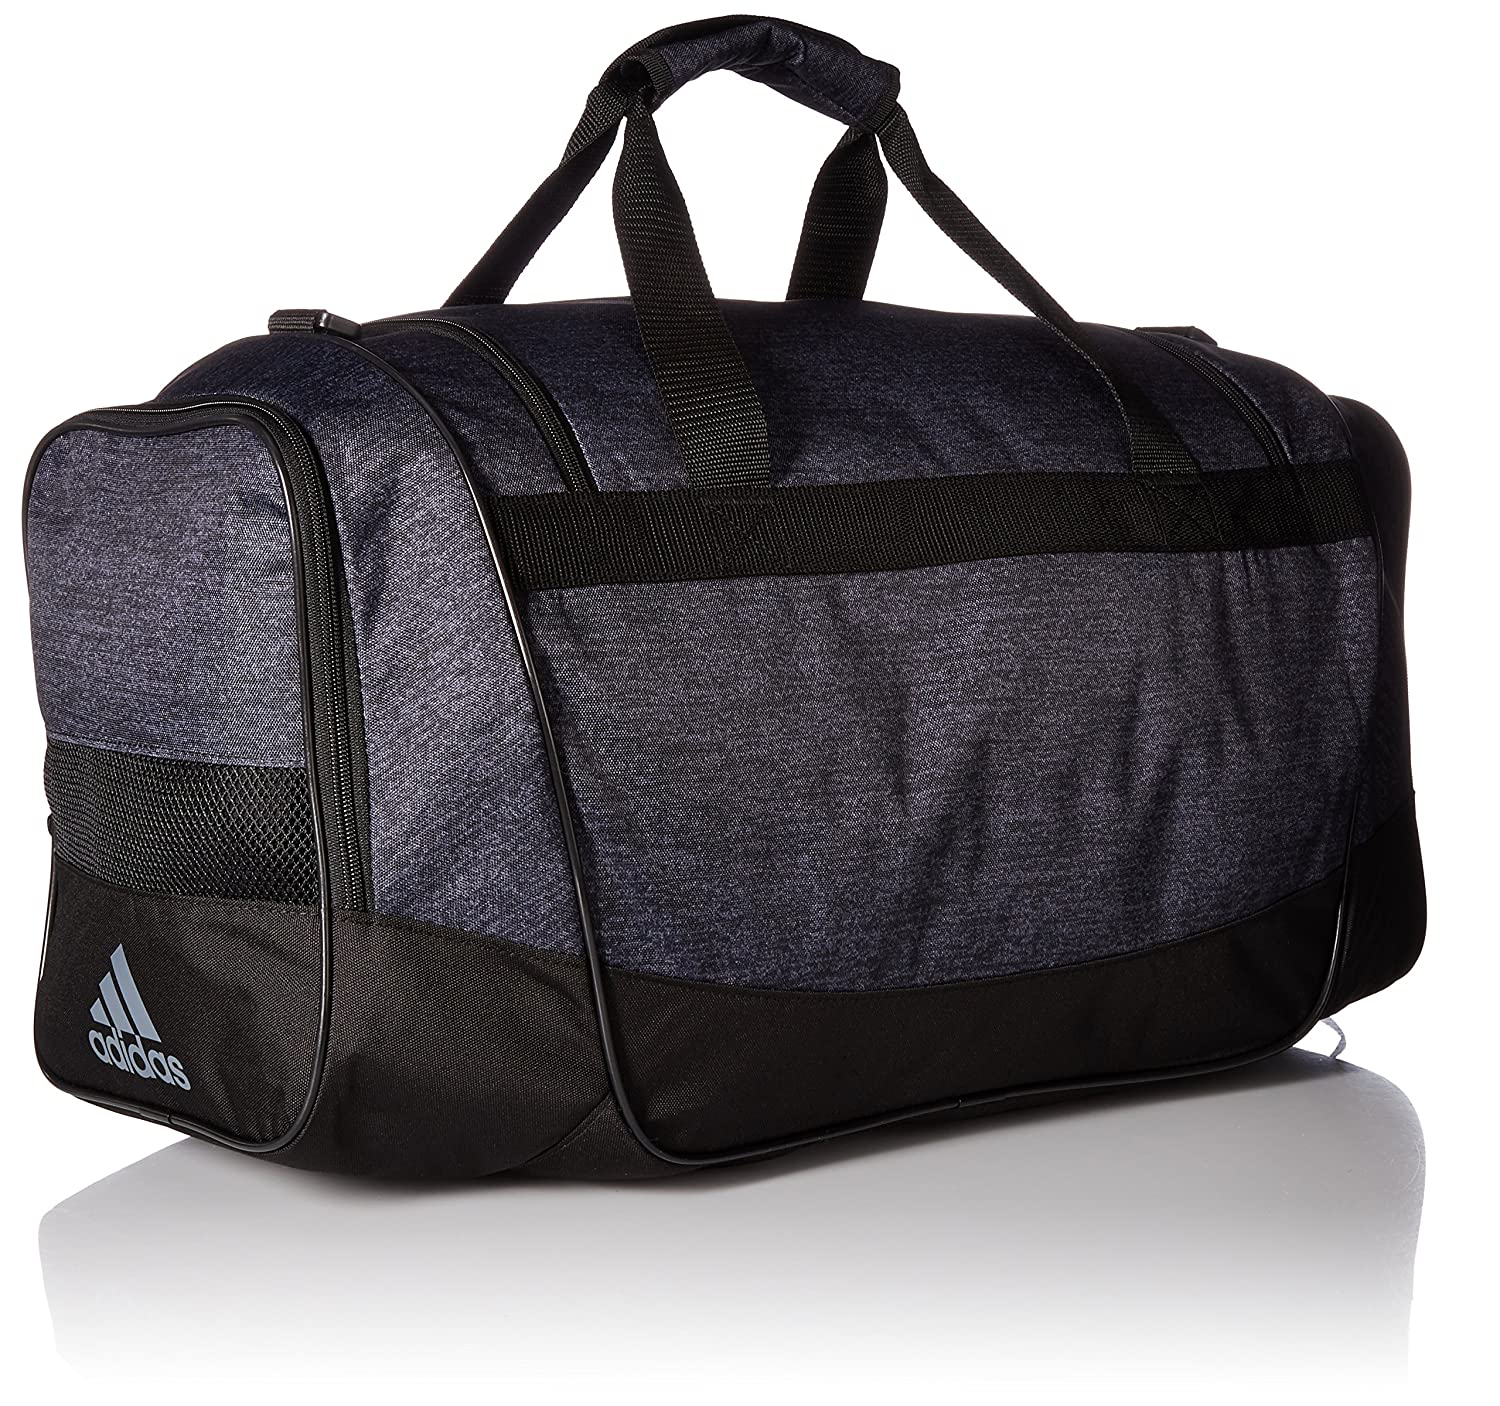 ed8e9a25 Adidas Defender III Duffel Bag, Medium